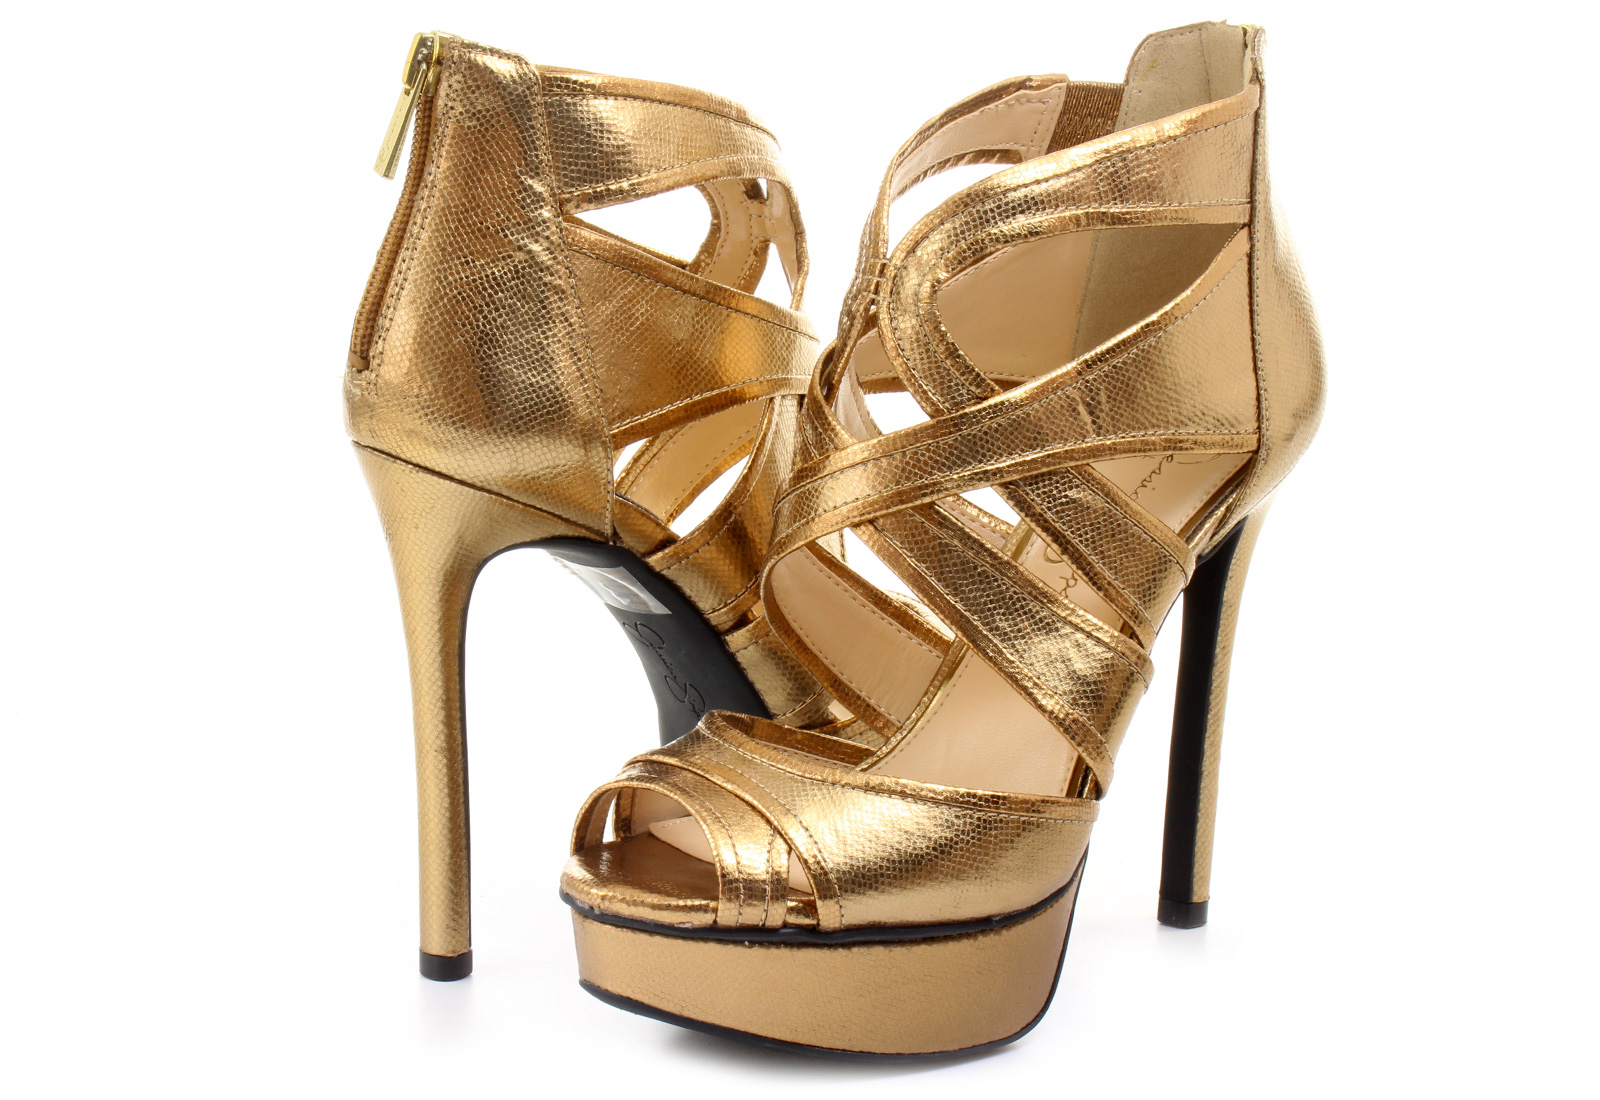 Jessica Simpson High Heels - Cheere - cheere-brz